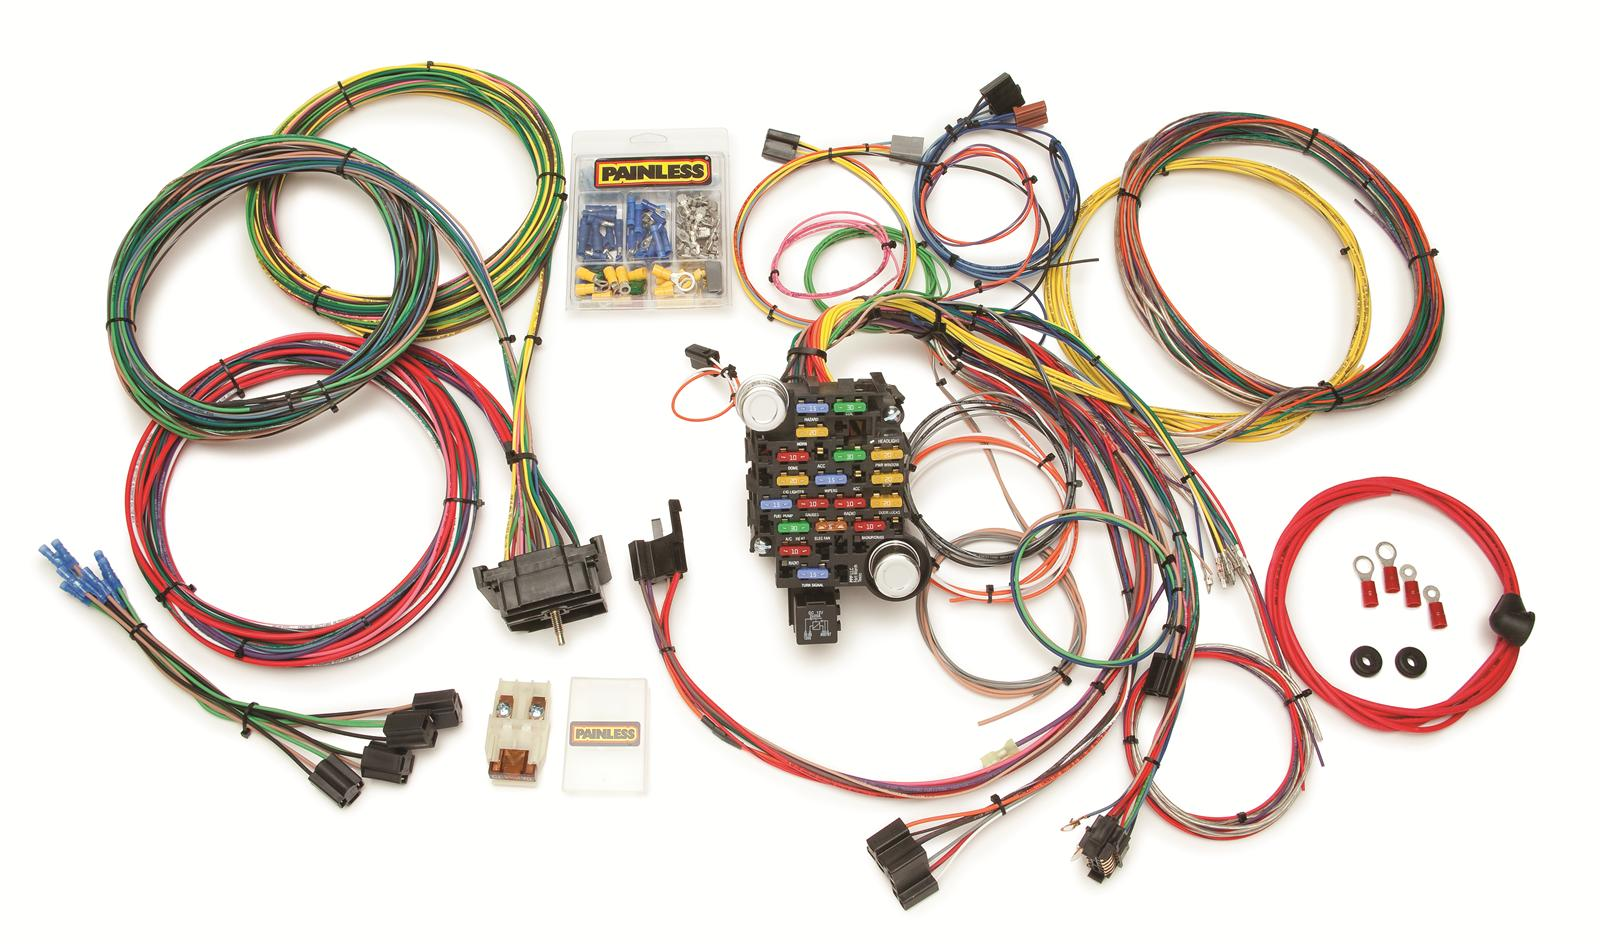 prf 10206_xl painless wiring harness 5 0 engine swap wiring harness \u2022 free 1966 GTO Engine at panicattacktreatment.co